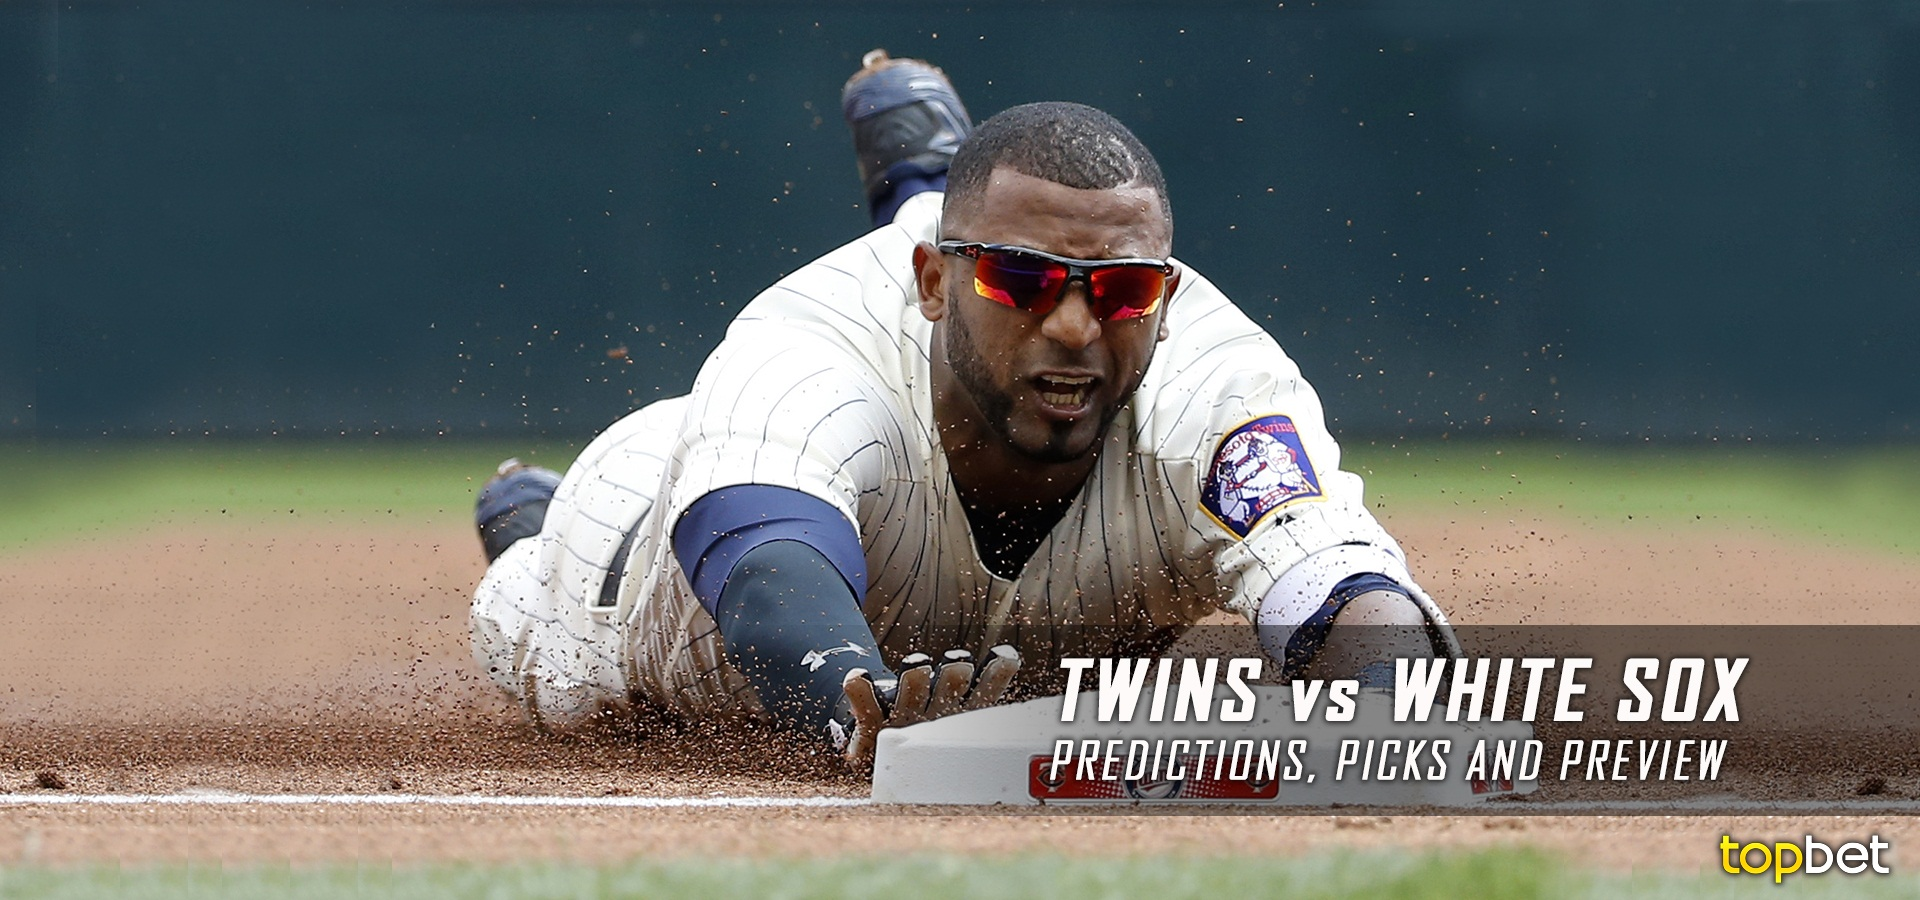 twins game live online picks against the spreads